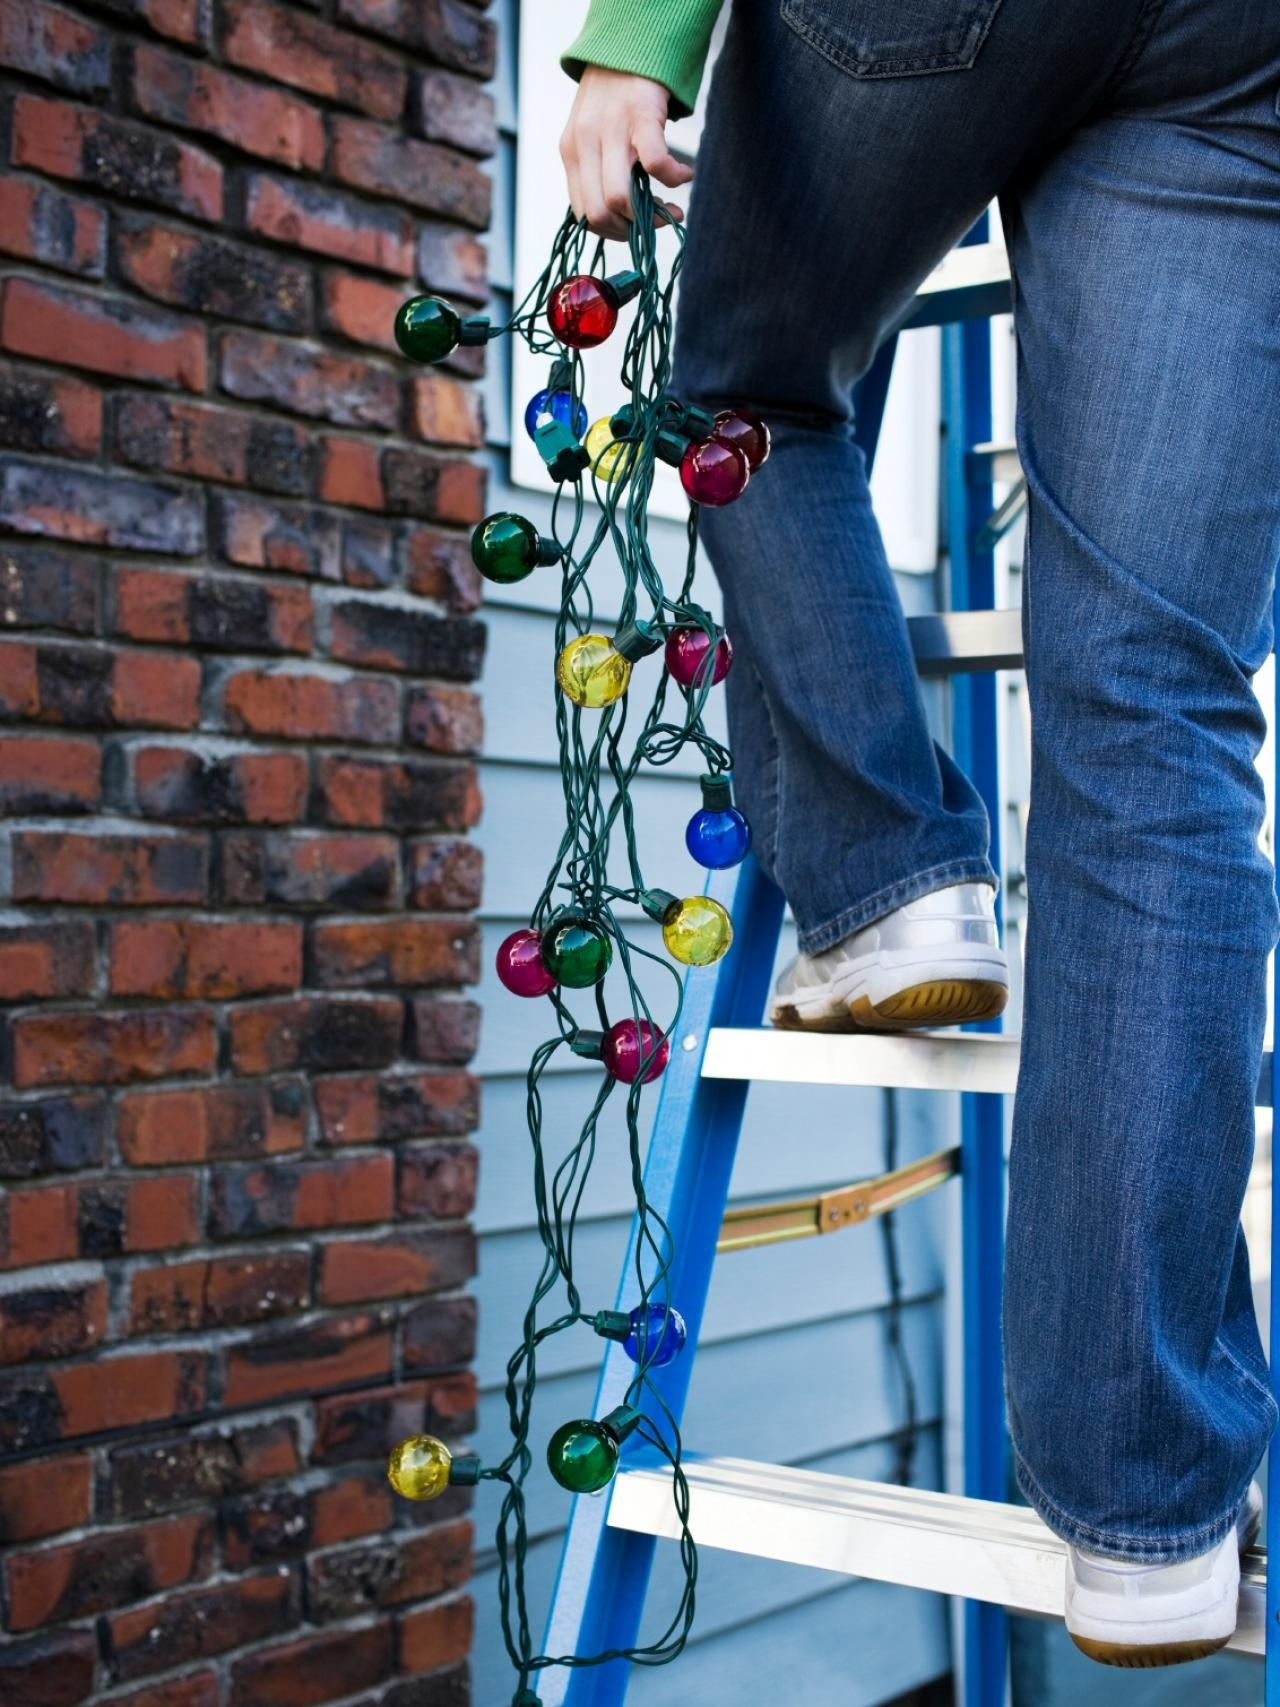 Diy With Hanging Outdoor Christmas Lights In Roof (View 12 of 20)